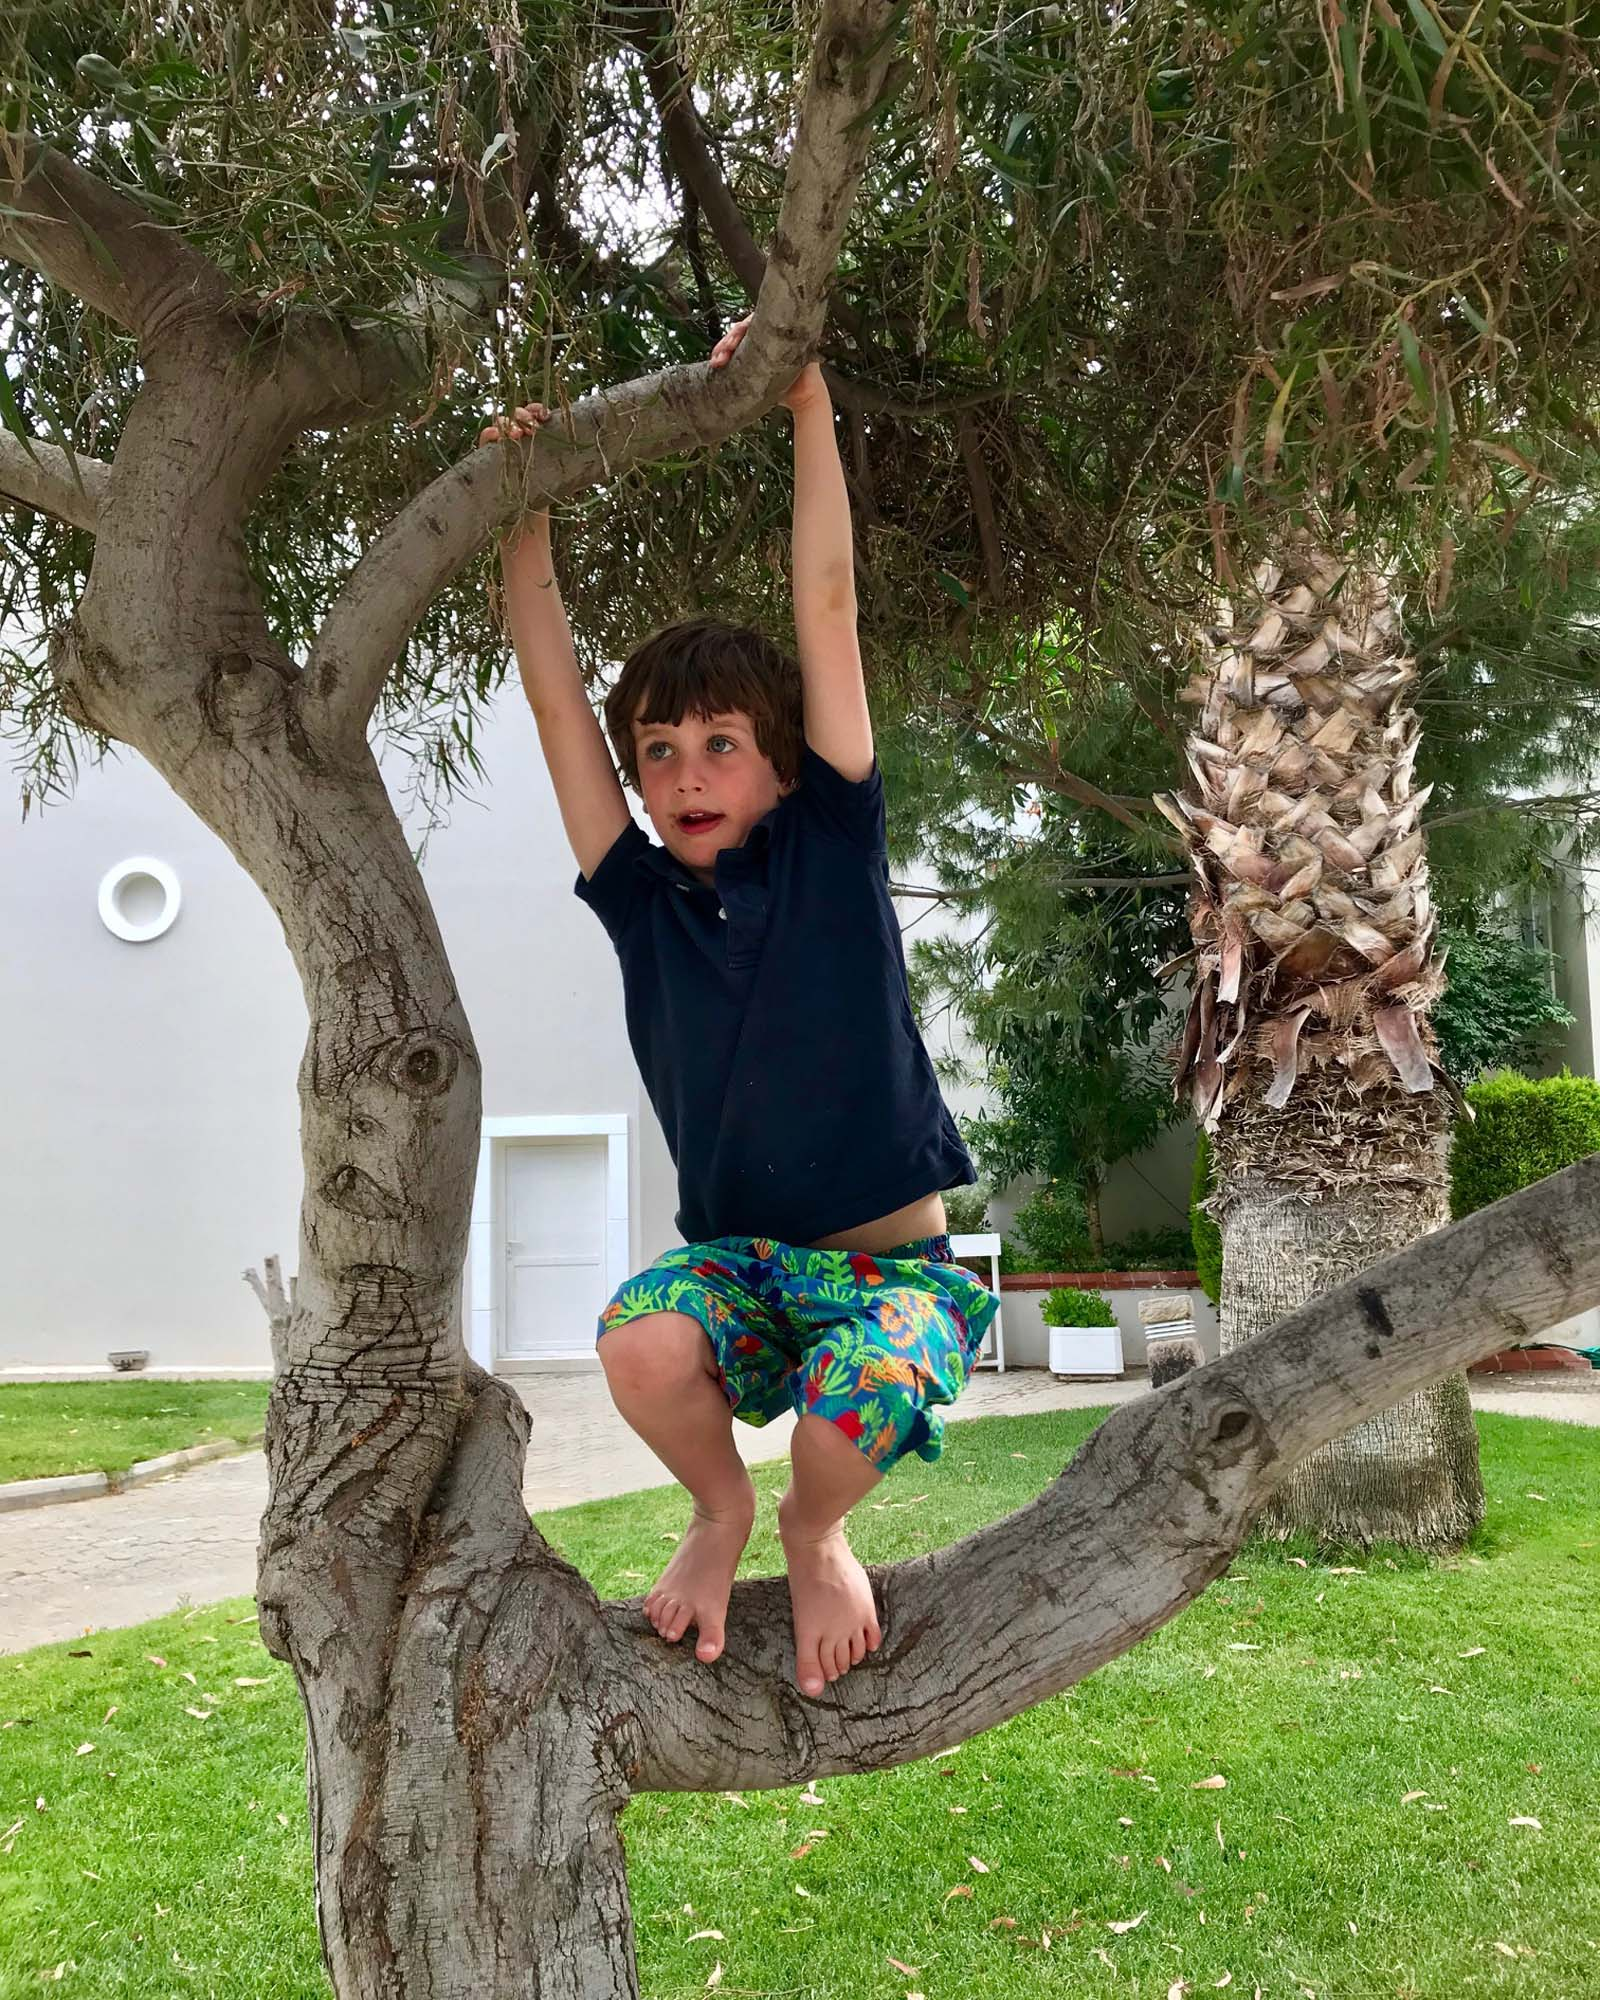 Zac up one of the many trees in the Phokaia resort. Yes that's chocolate round his mouth